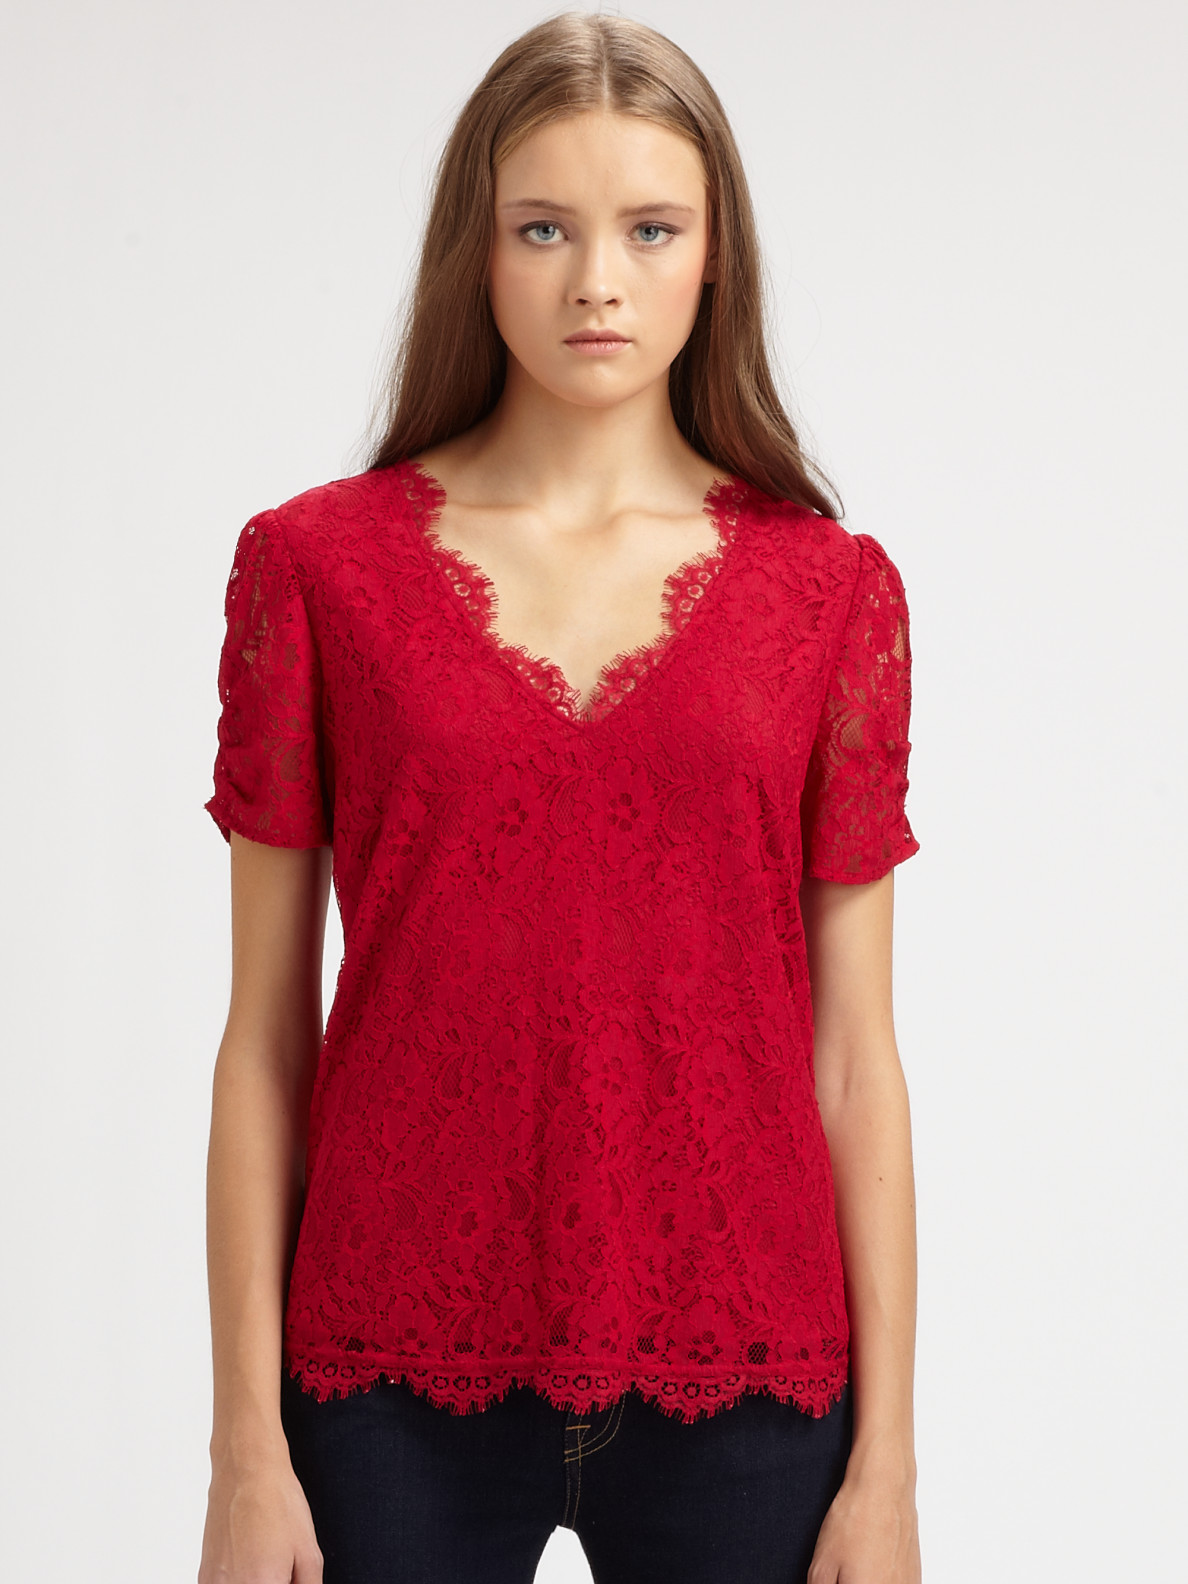 Joie Brianda Lace Top in Red | Lyst